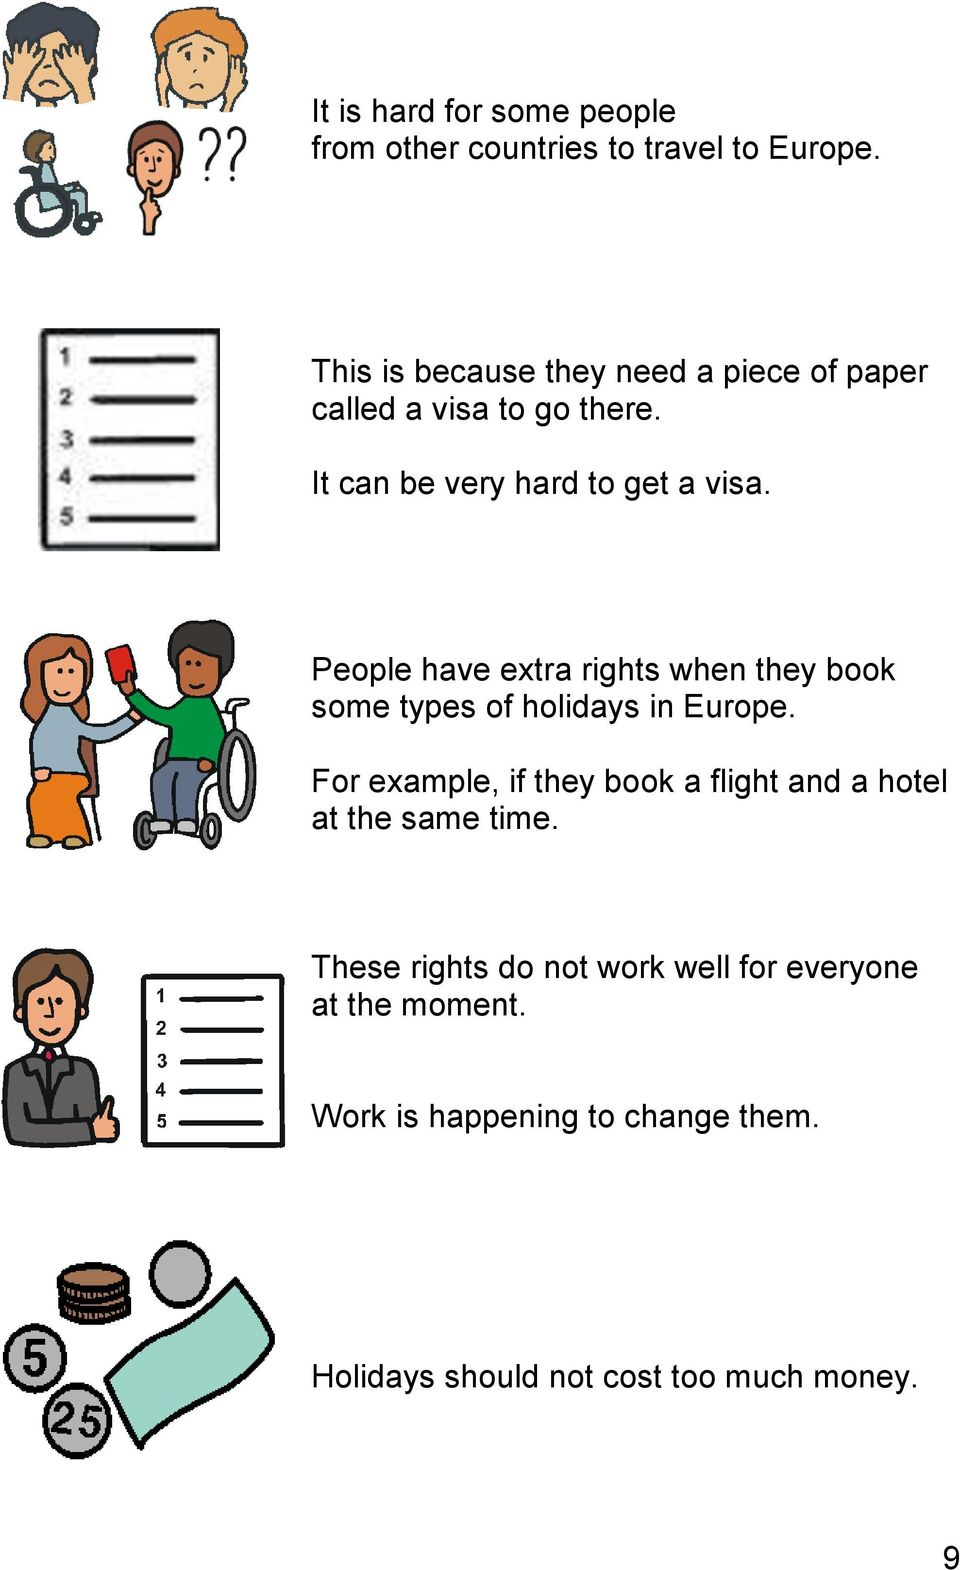 People have extra rights when they book some types of holidays in Europe.